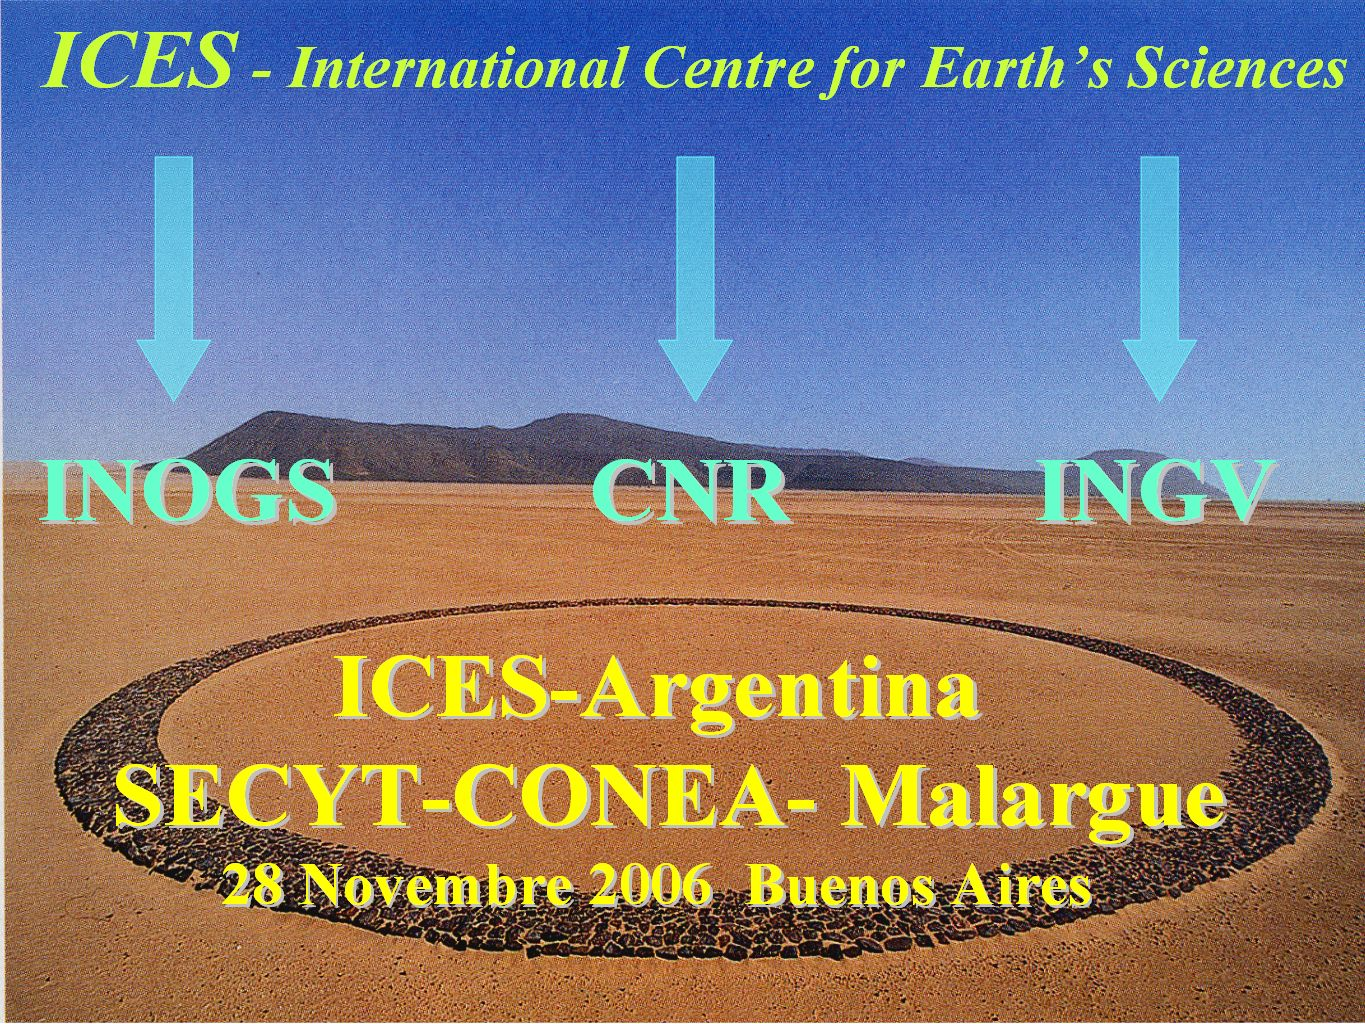 ICES - International Centre for Earth's Sciences